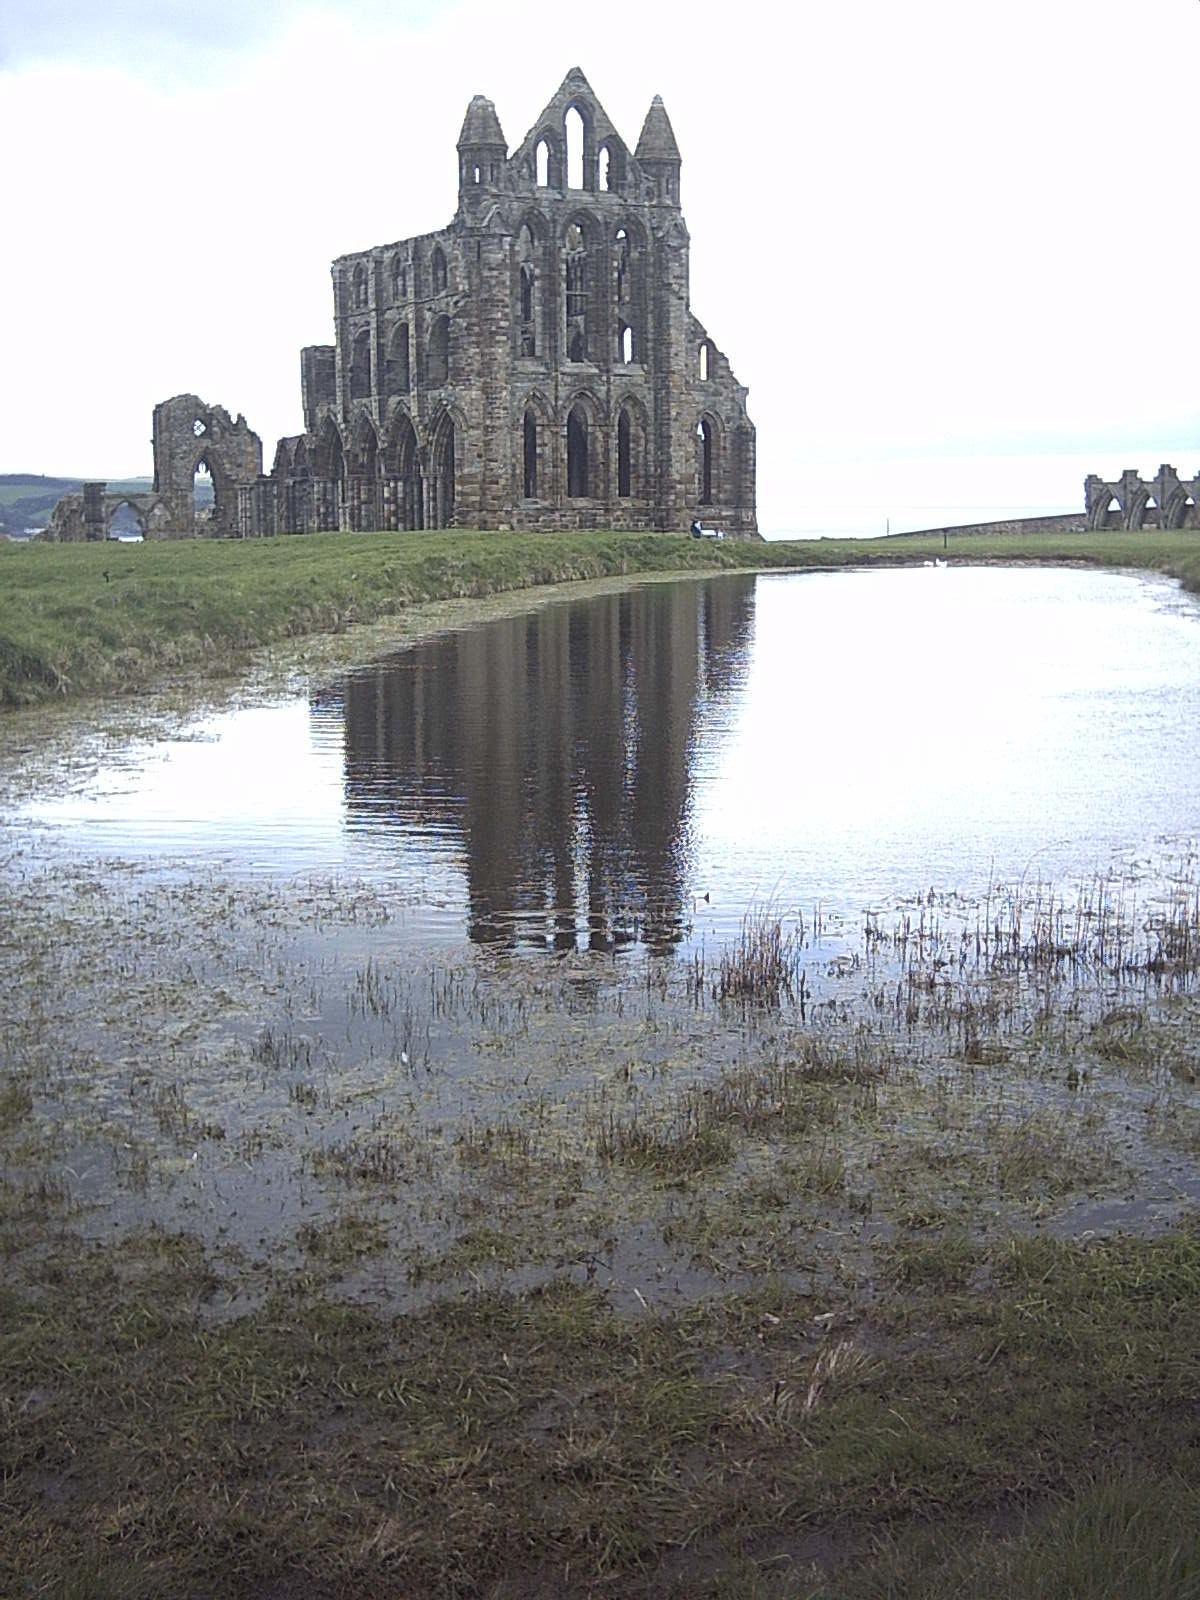 Whitby Abbey by Neil Gray (Home is where the heart is, right?)